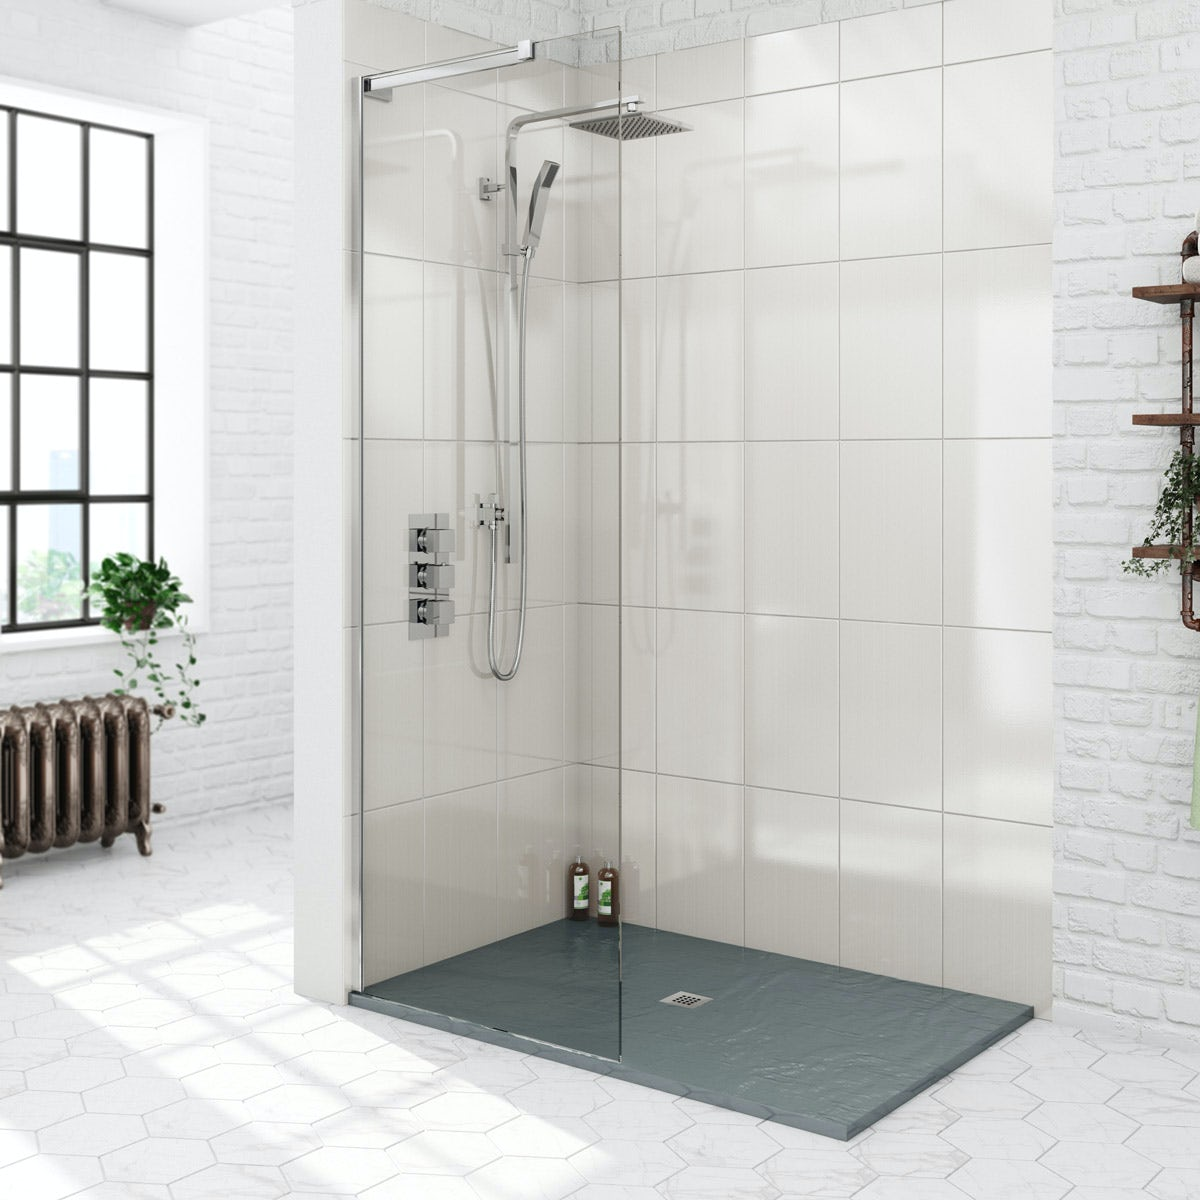 Image Result For Handicap Walk In Shower